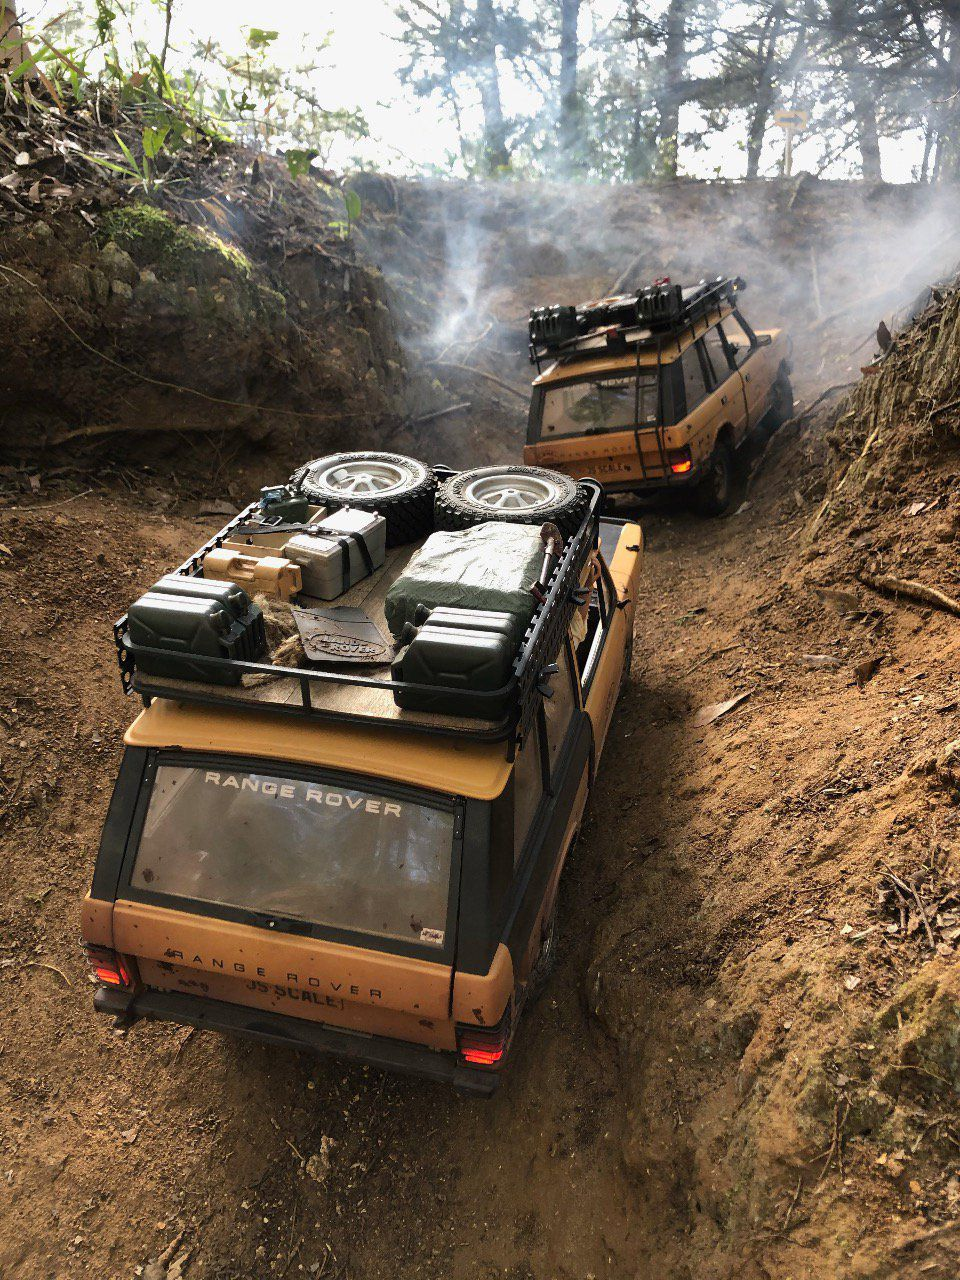 81CTkit - 1981 Camel Trophy kit (3 door Range Rover)